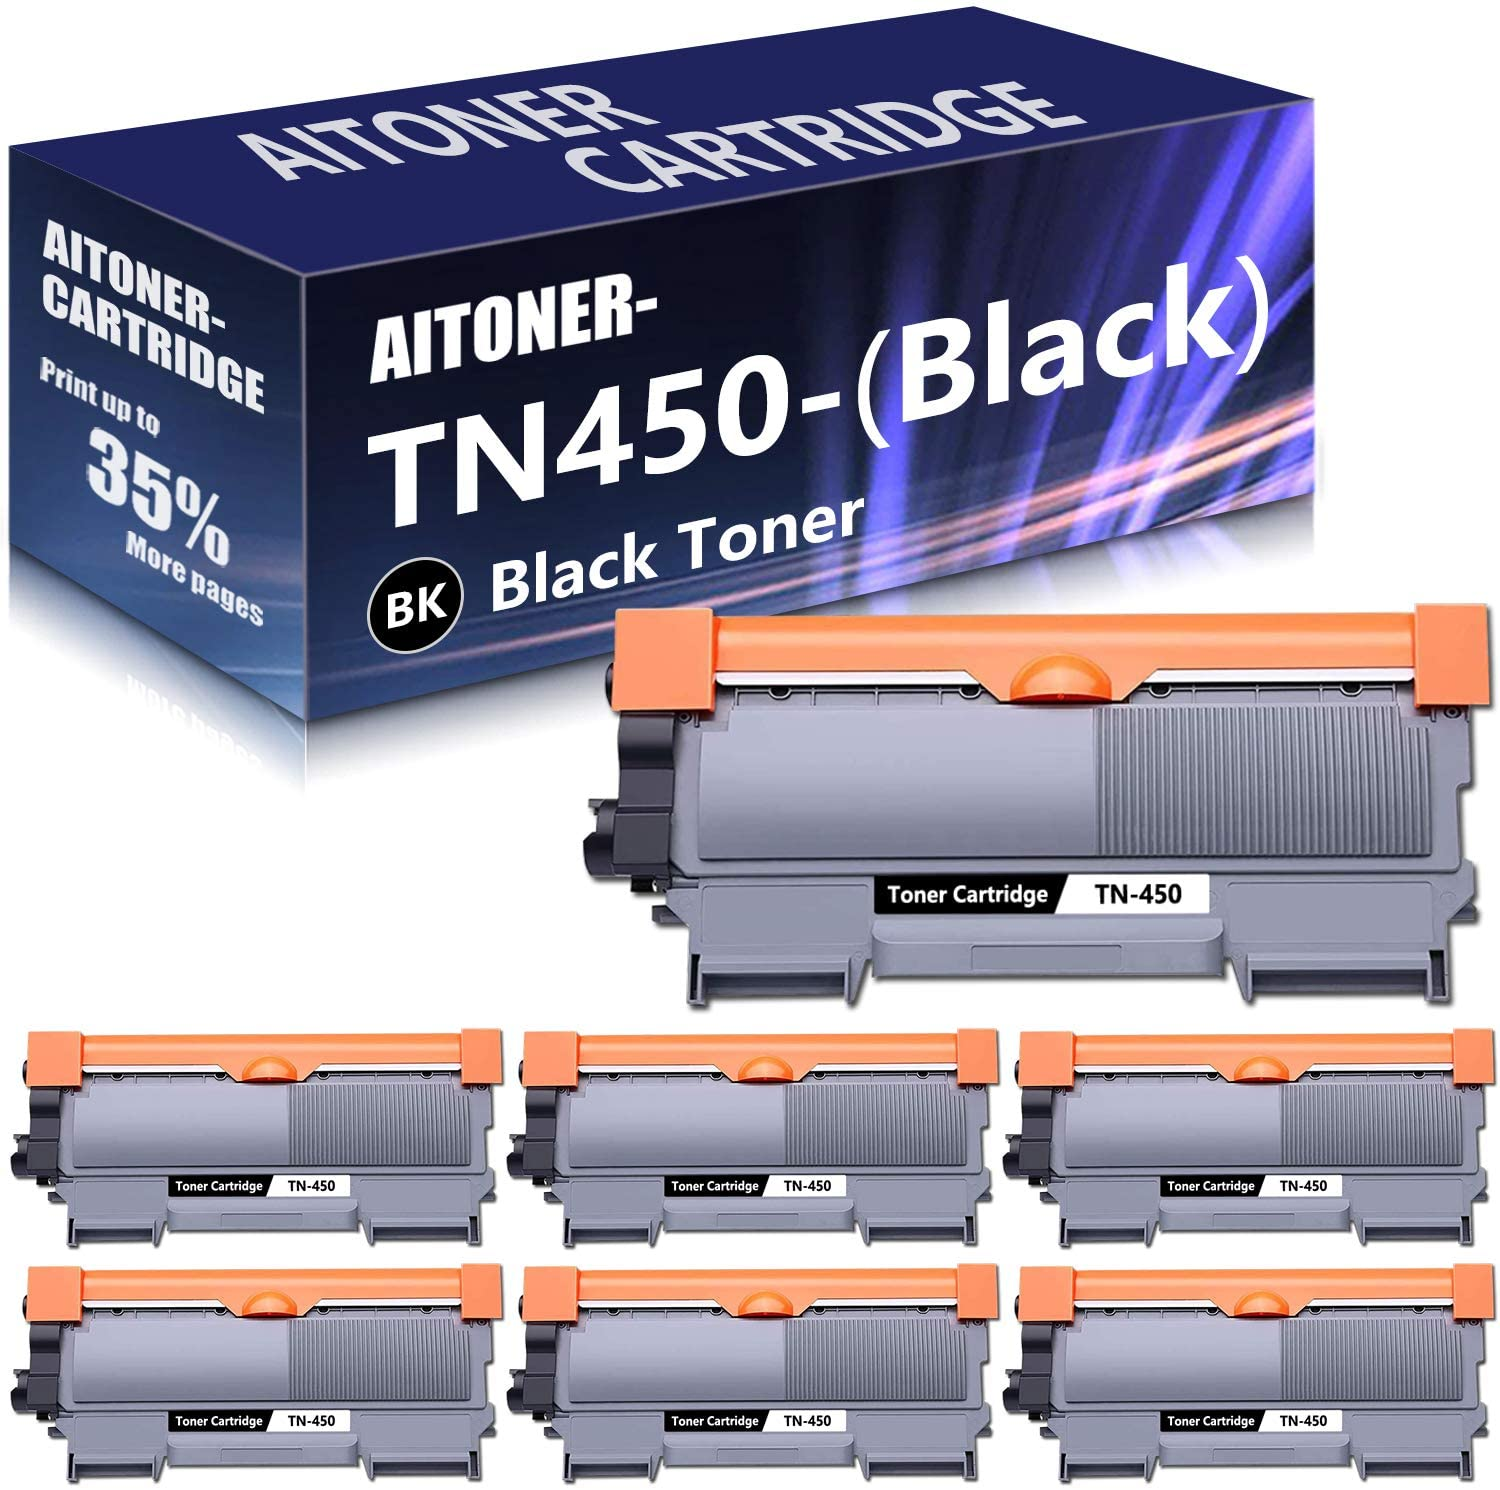 7 Pack (Black) TN450 High Yield Toner Replacement for Brother DCP 7060D DCP 7065D HL 2130 HL 2132 HL 2275DW HL 2220 HL 2230 HL 2240 HL 2240D MFC 7240 MFC 7360N MFC 7860DW Intellifax 2940 Printers.